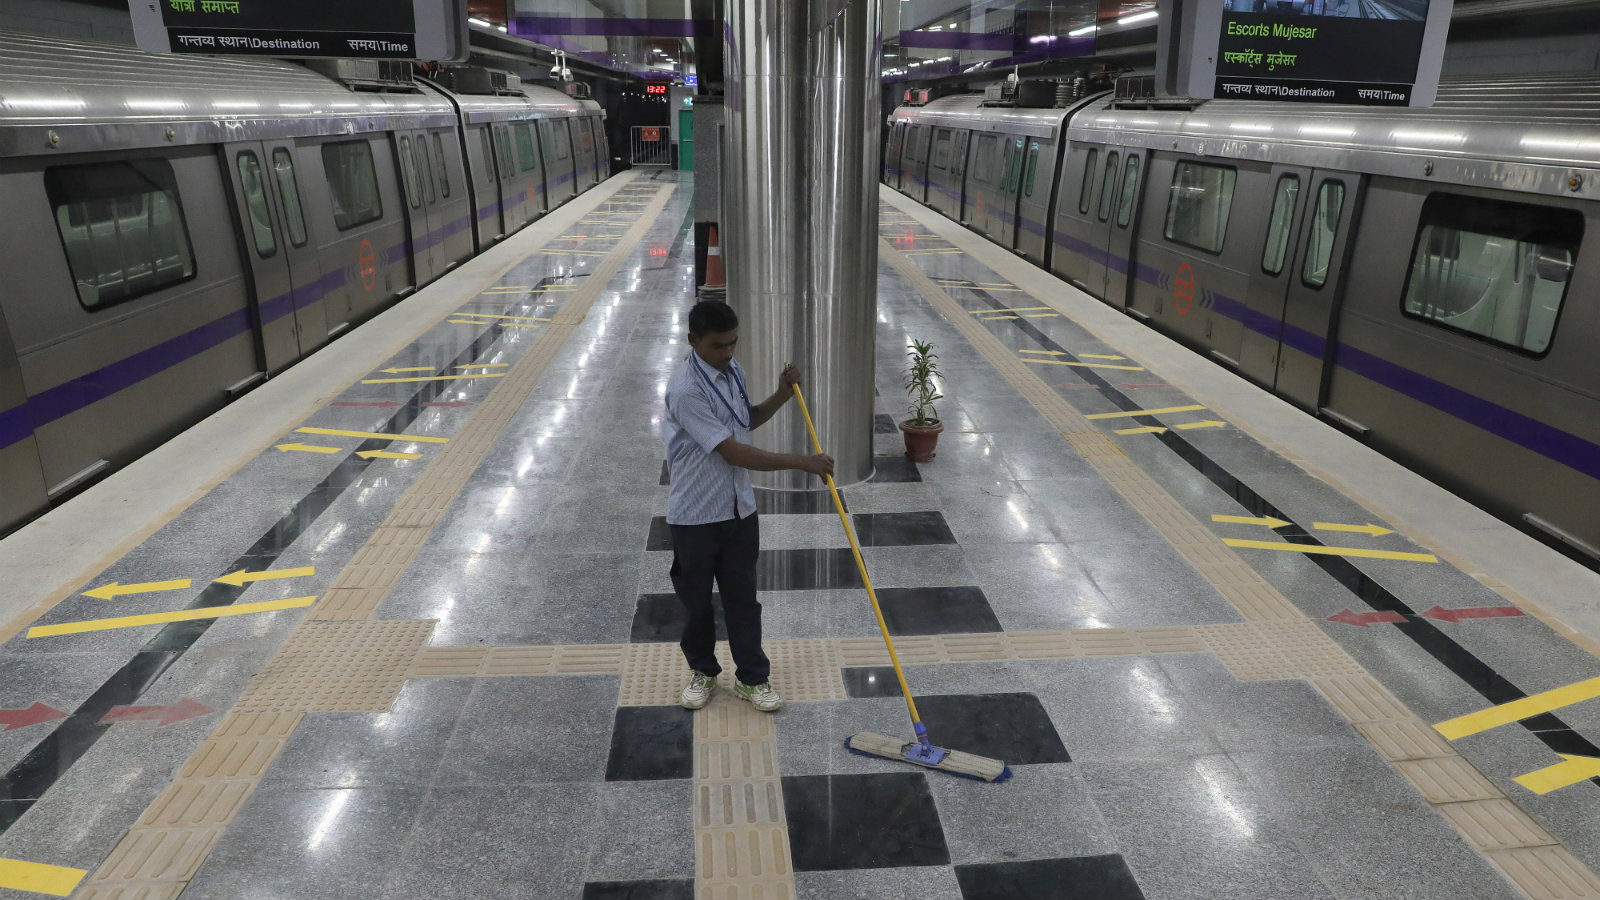 A worker at a Delhi Metro station.